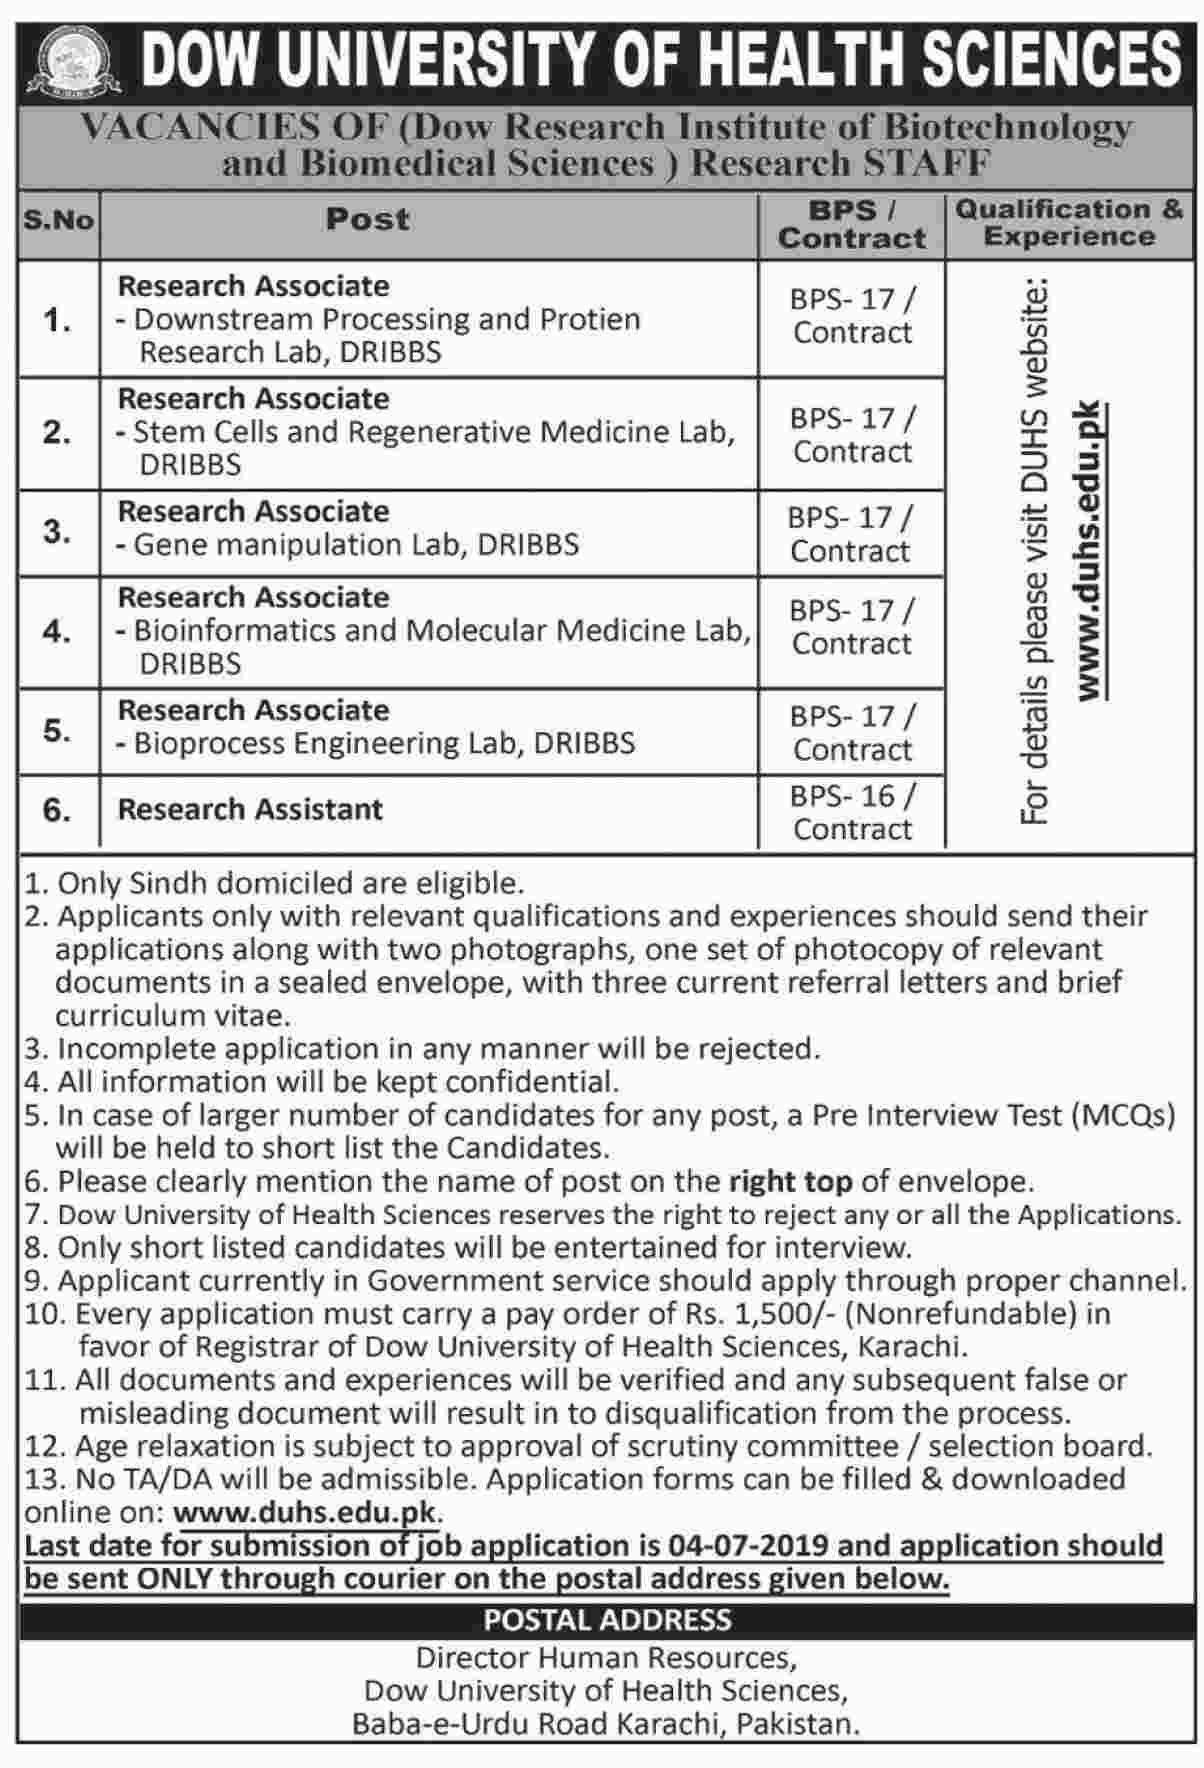 Dow University Of Health Sciences Offering Jobs 2019